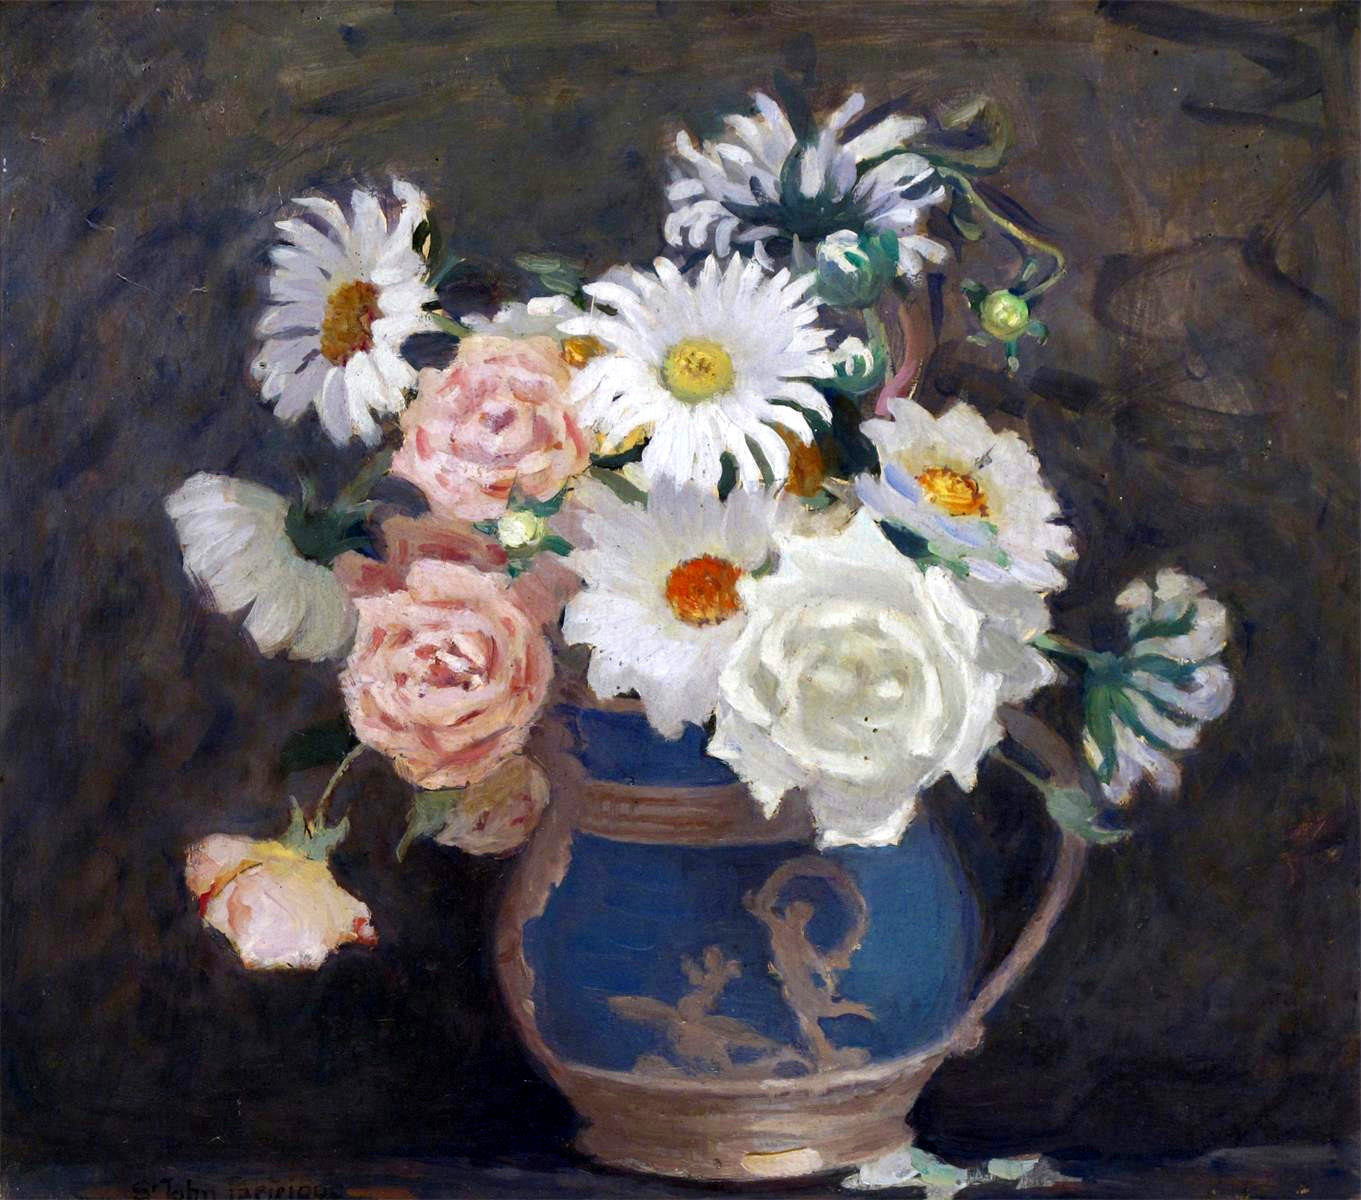 Roses and Daisies in a Jug